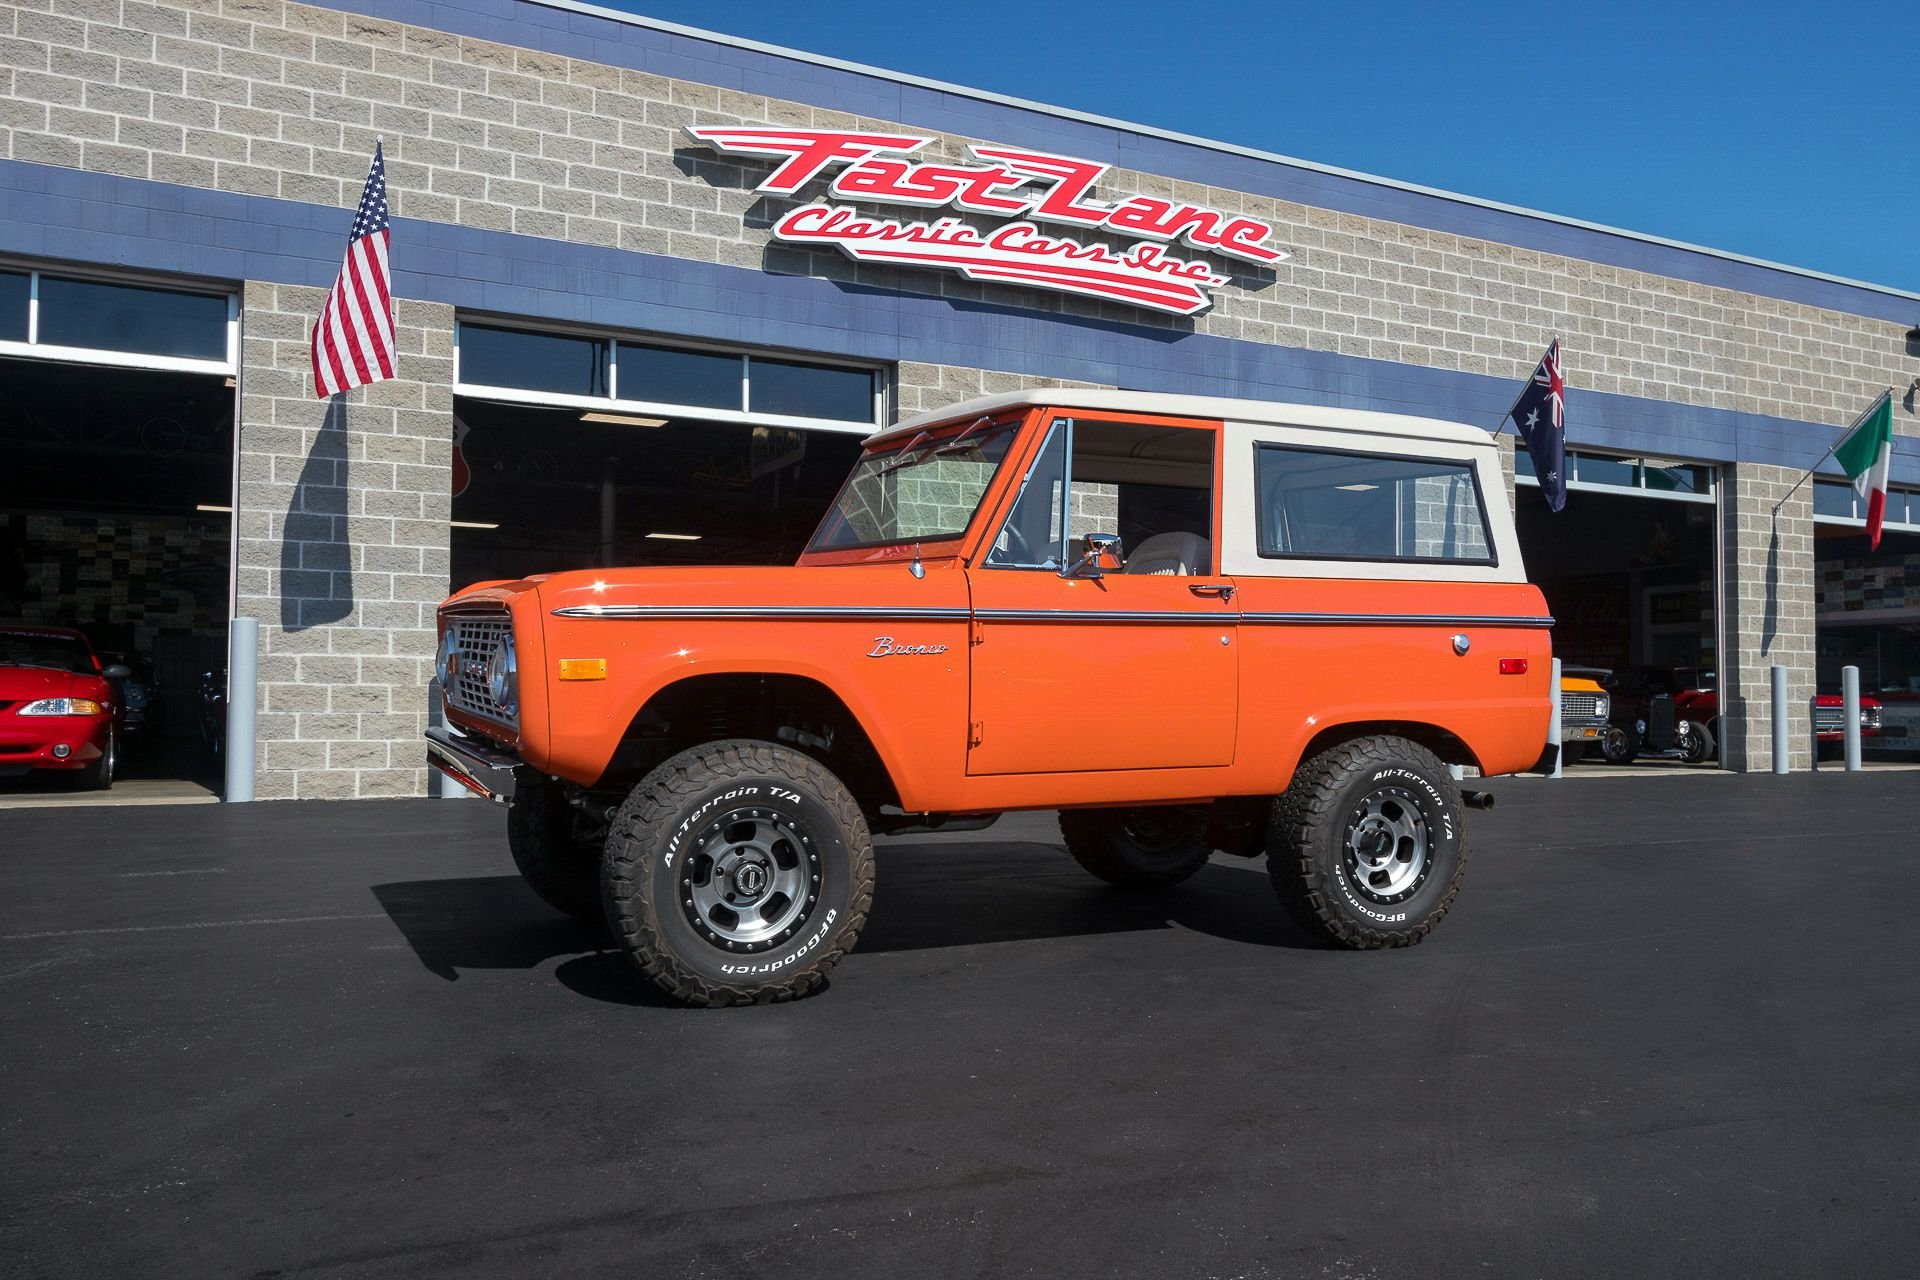 1970 Ford Bronco Fast Lane Classic Cars